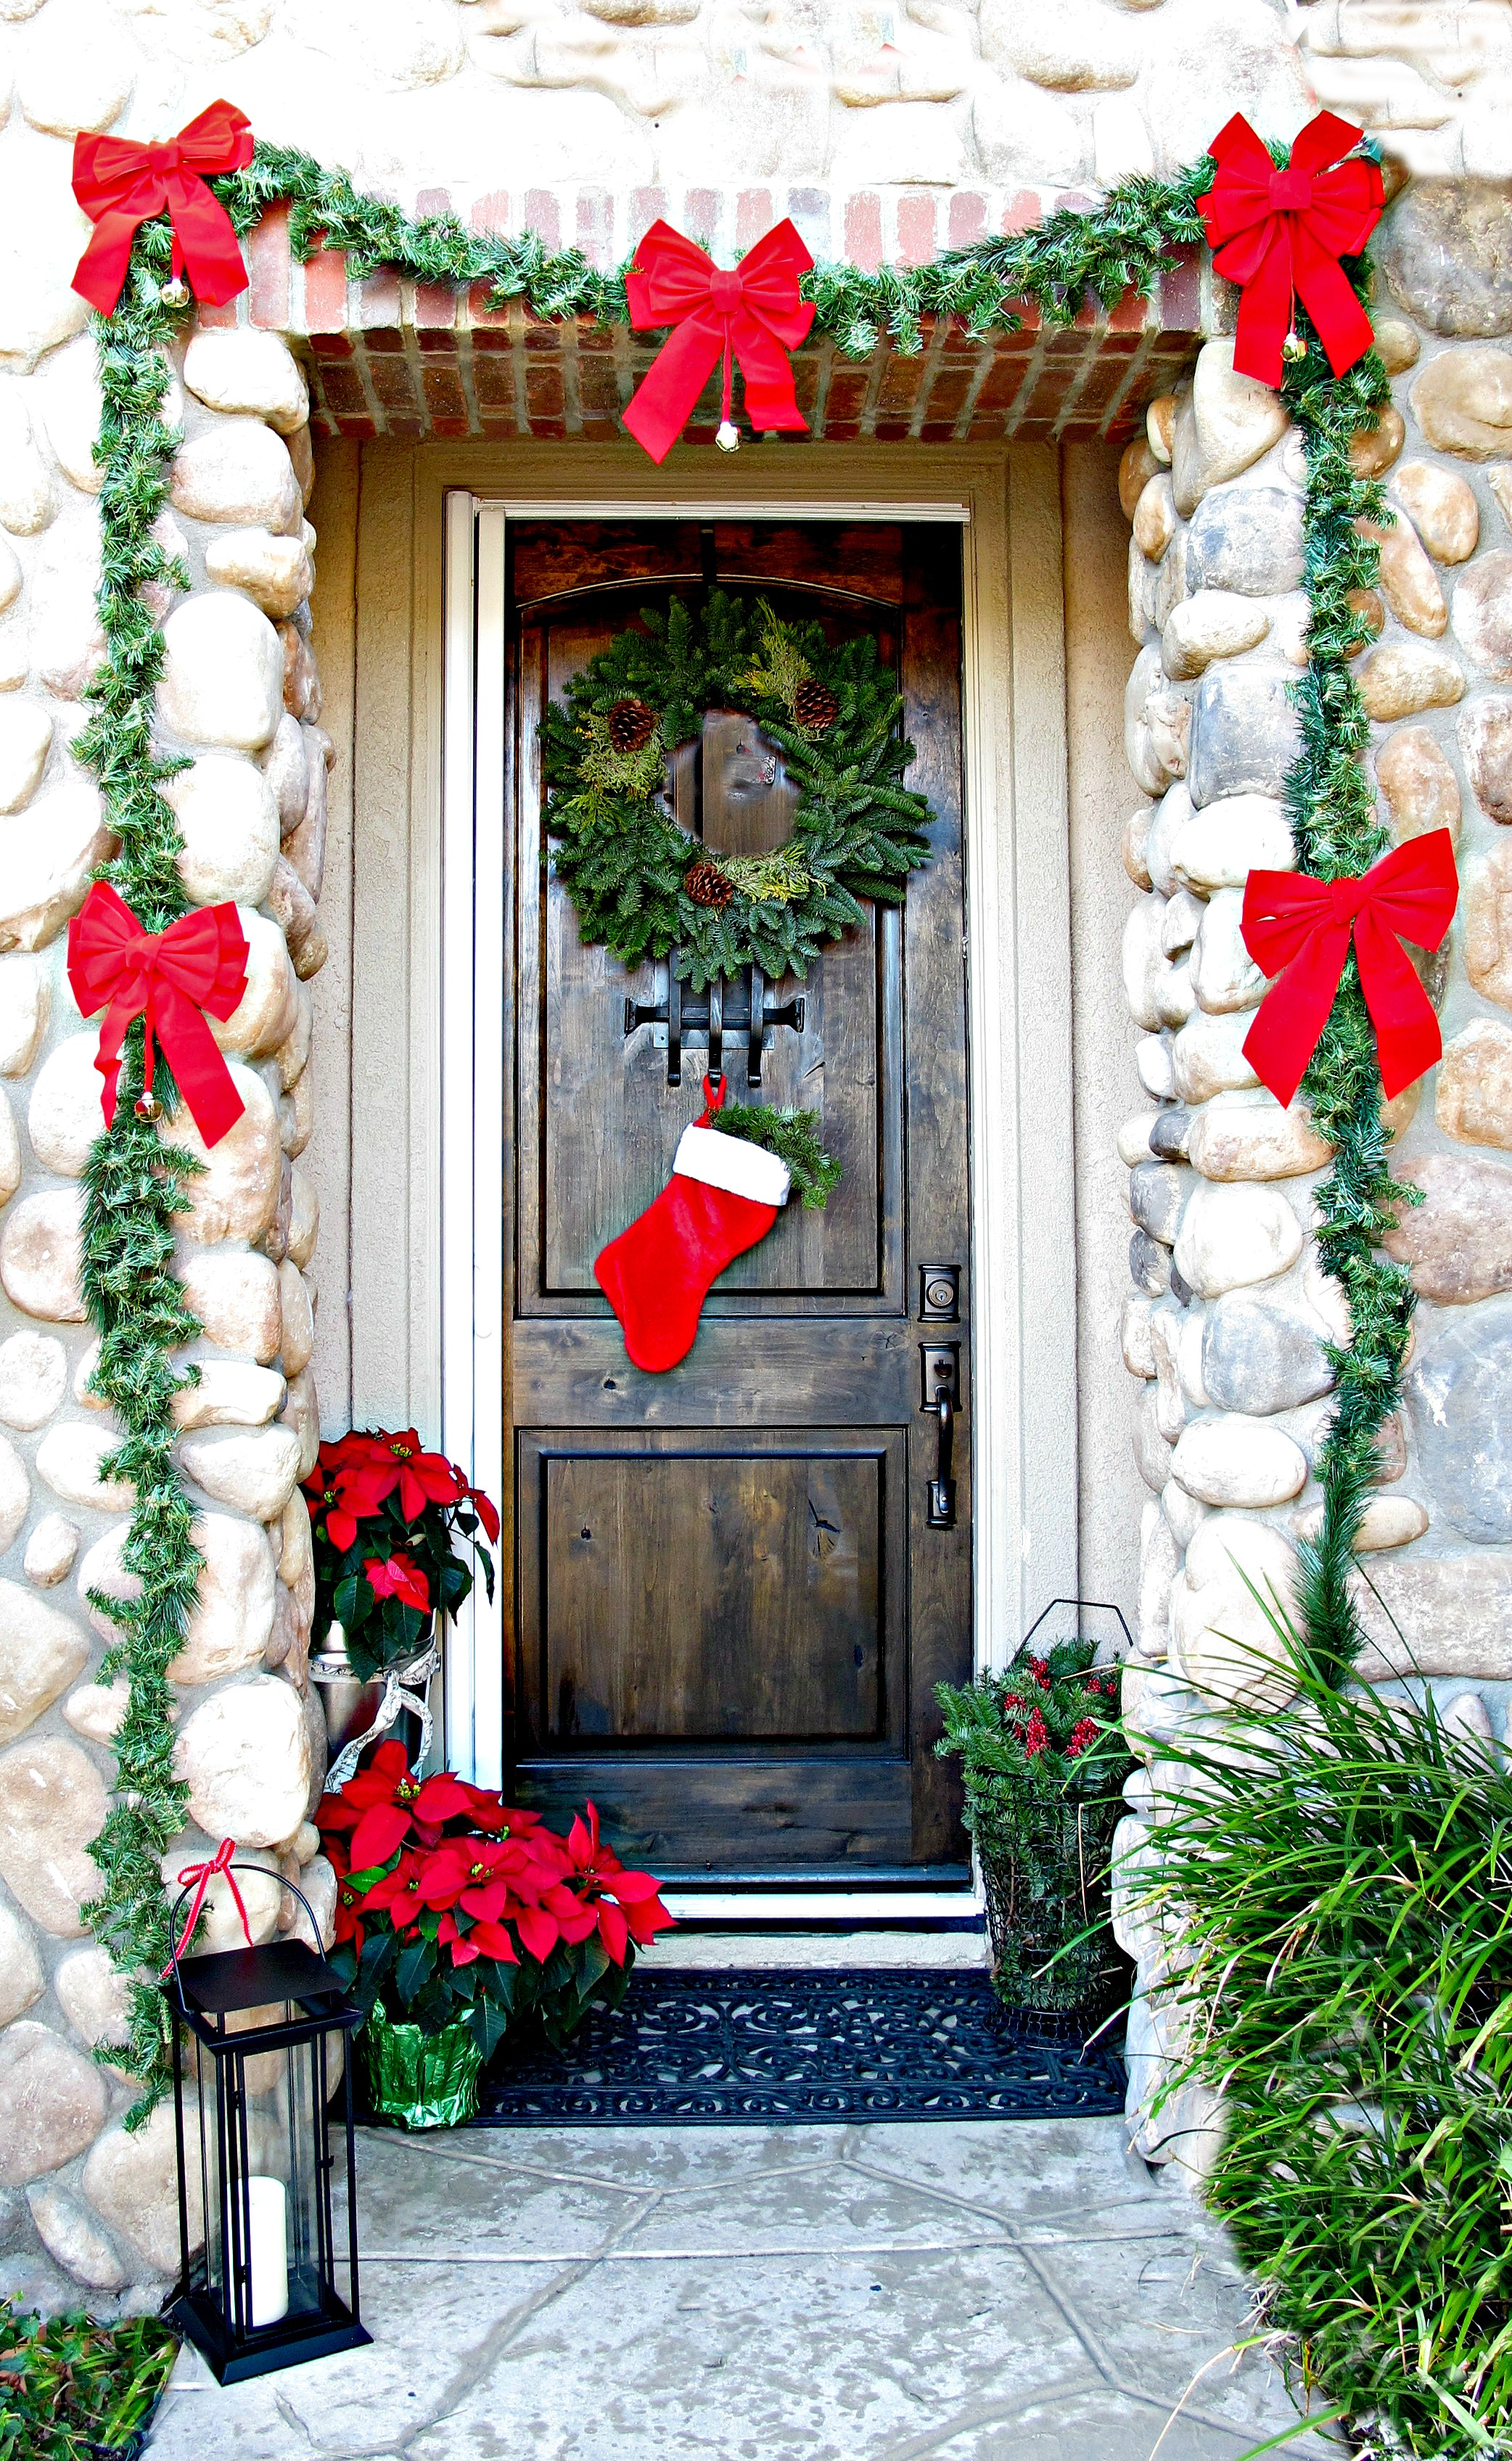 Christmas Door Decor Ideas Part - 46: 01-gift-wrapped-with-garland-christmas-door-decor-